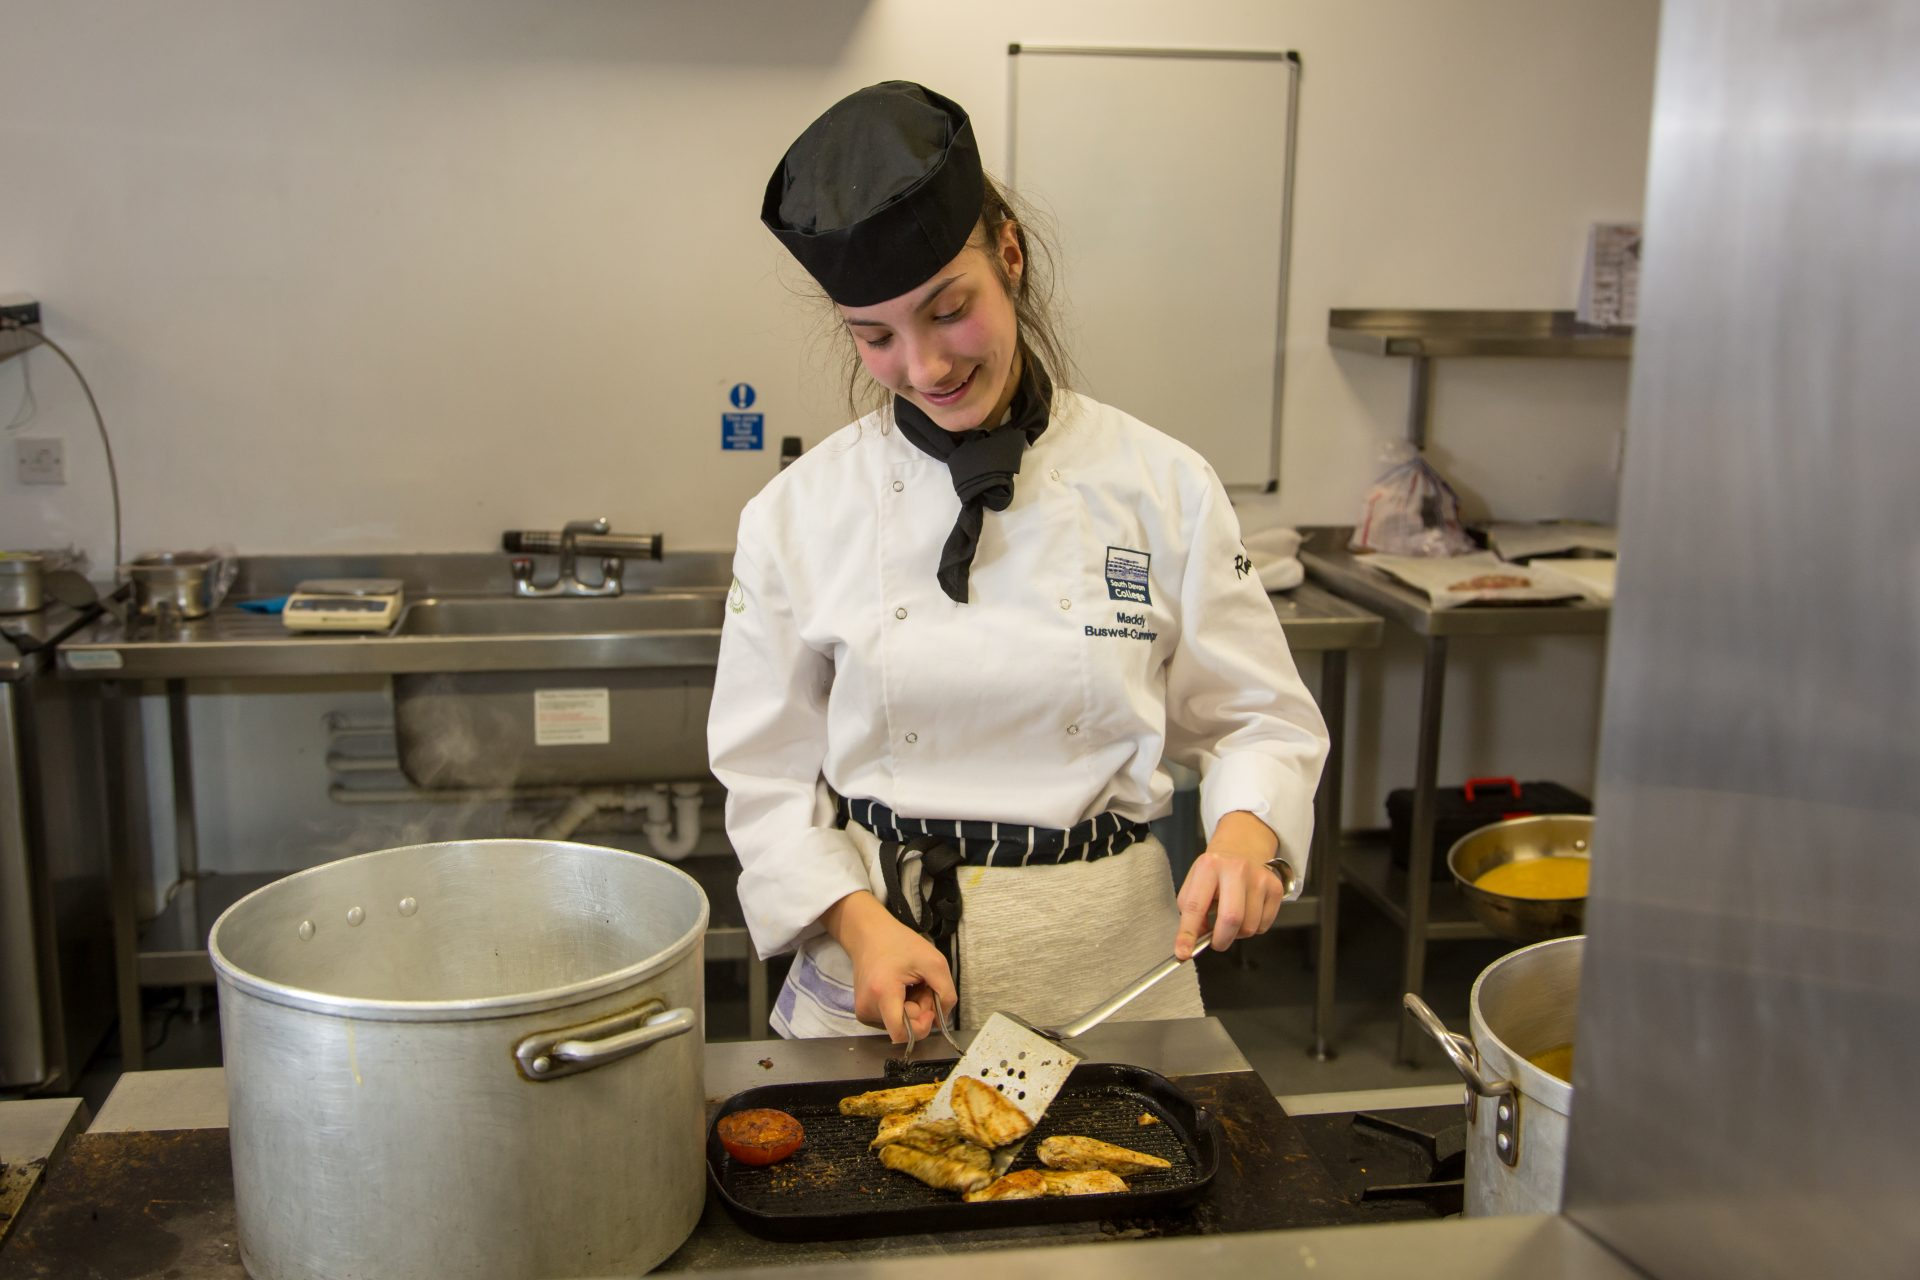 Production chef apprentice in the kitchen cooking.